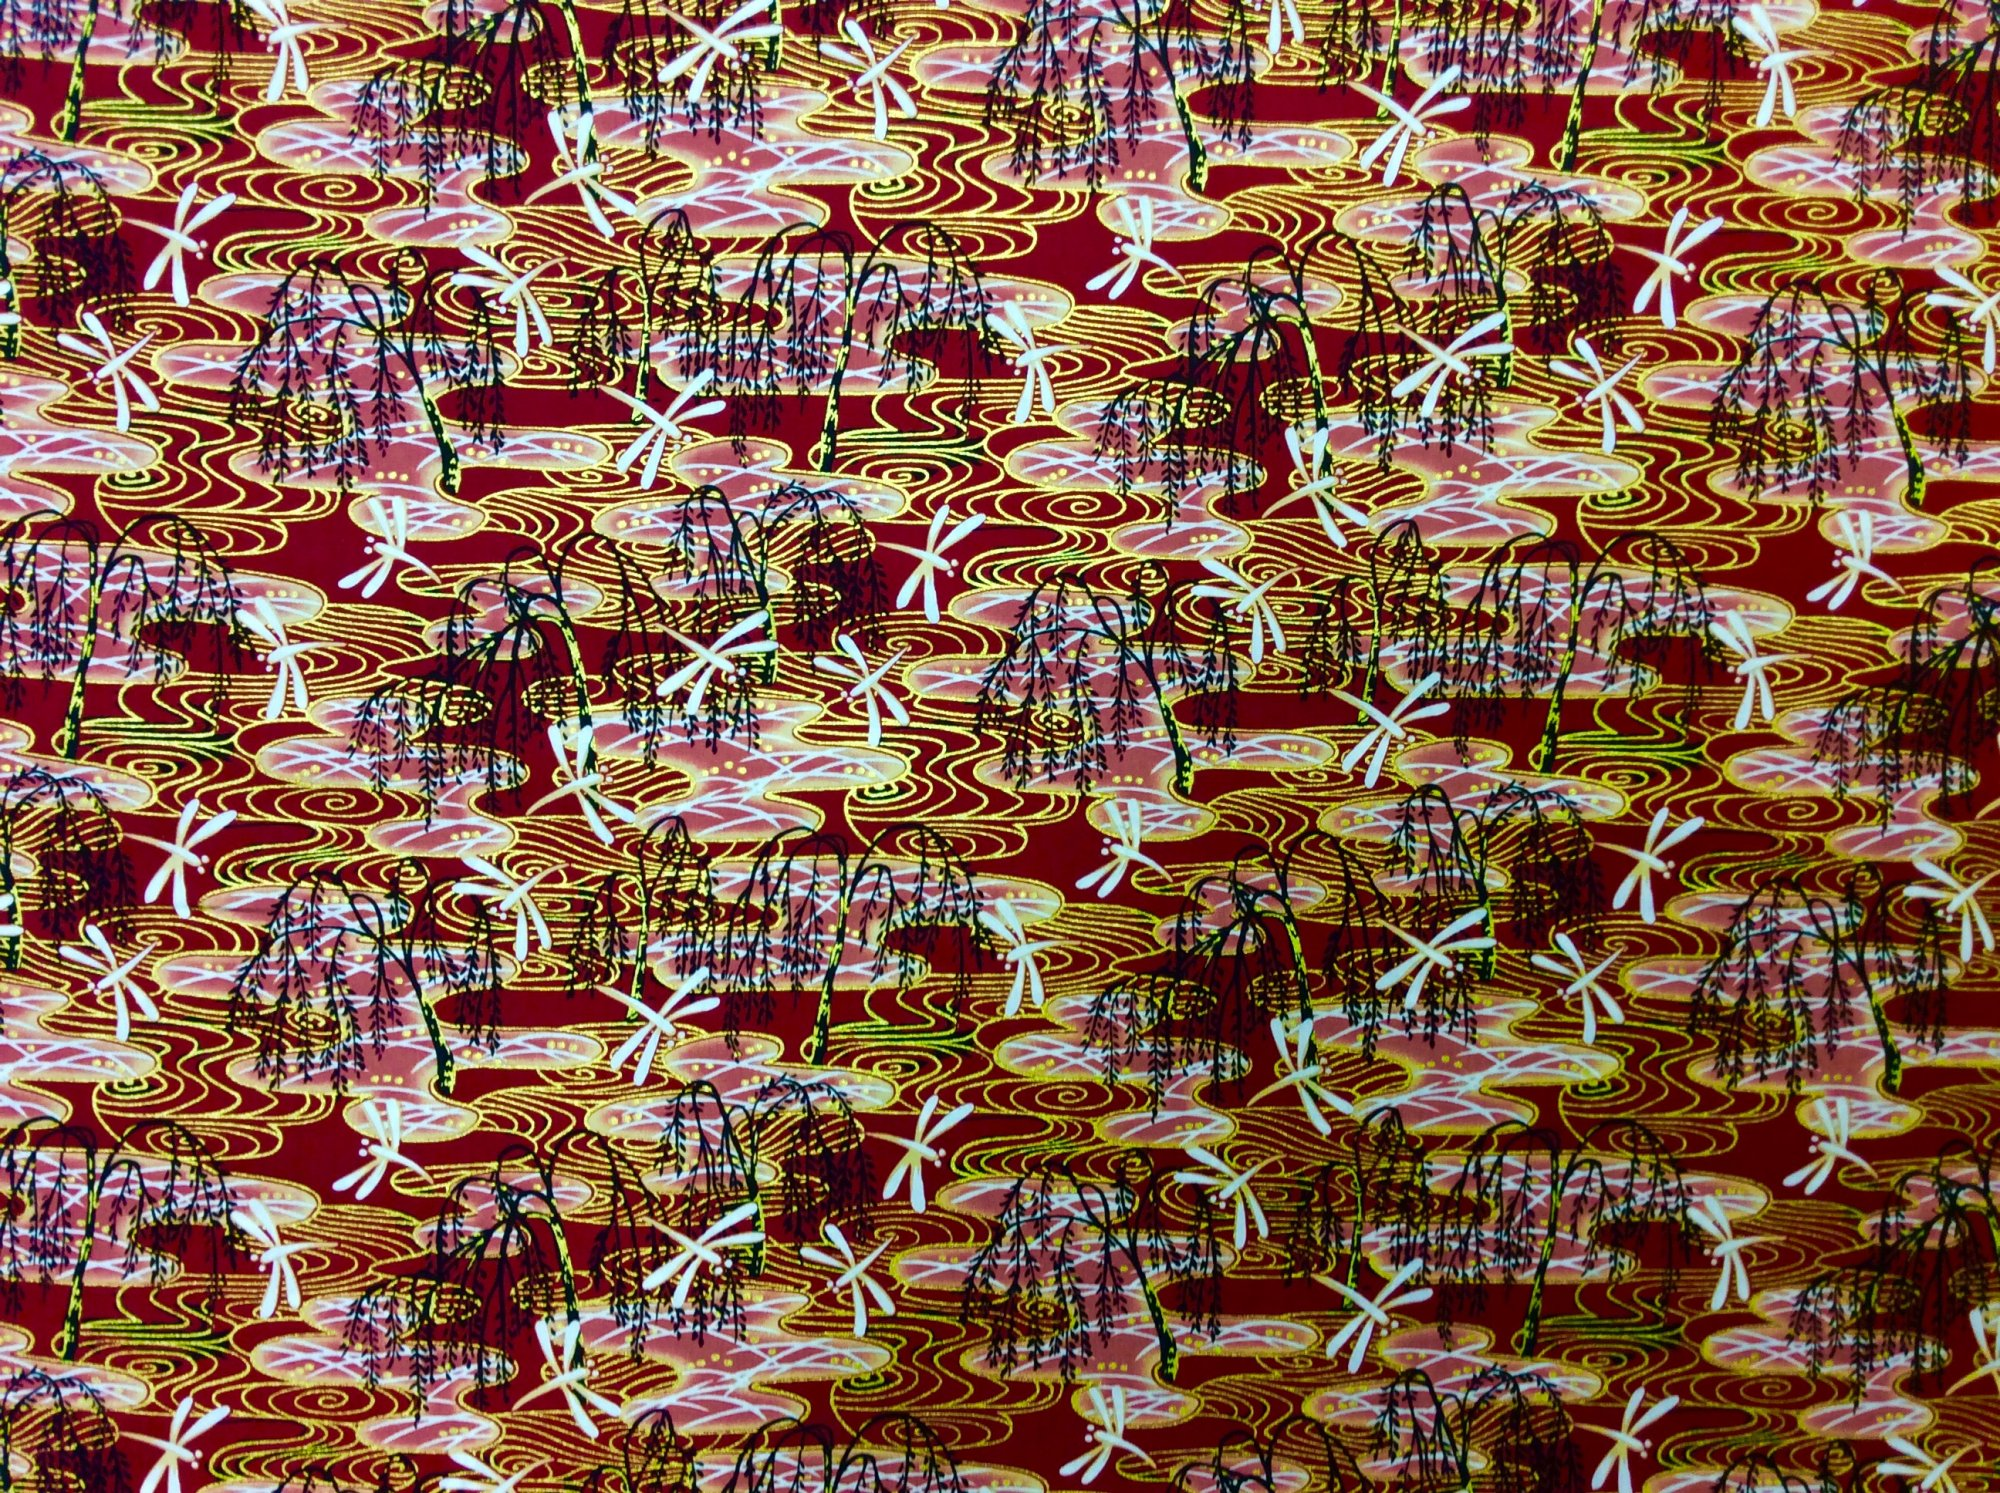 Asian Exotic Dragonfly Bonsai Red Gold Japan Asian Cotton Quilt Fabric TP052